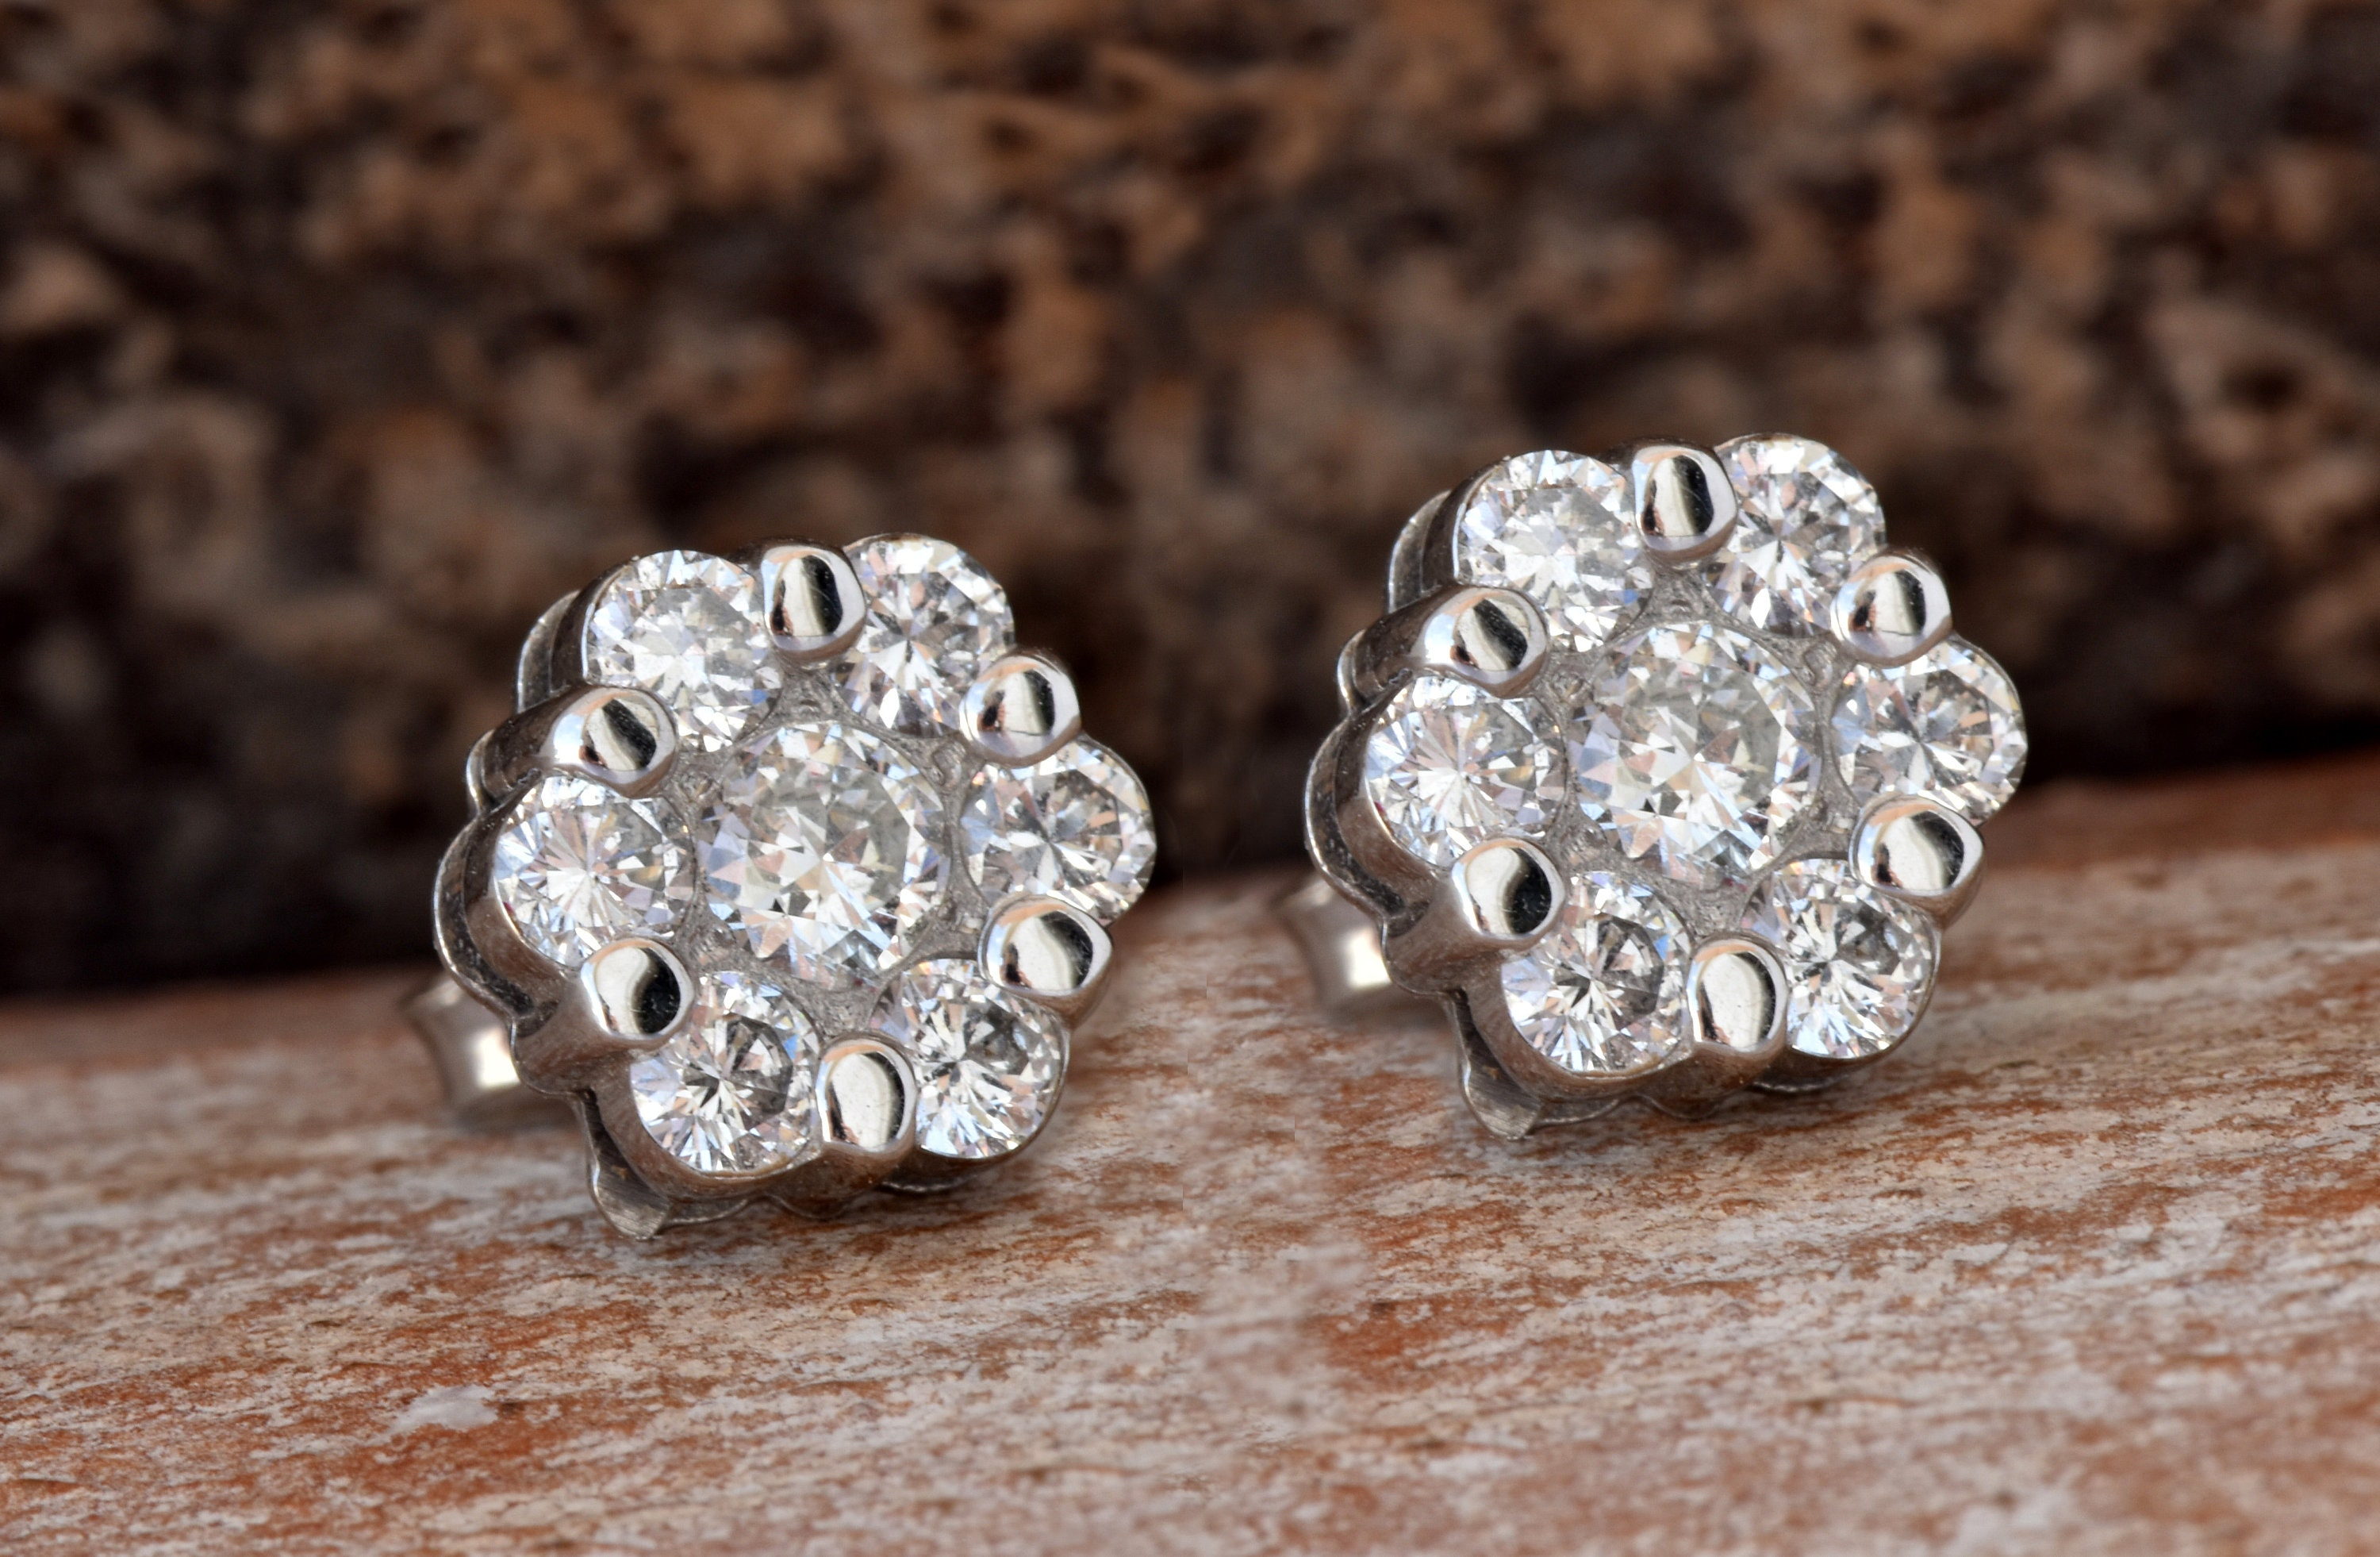 Flower diamond earrings 1 20 carat Gold Diamond Earrings 14K